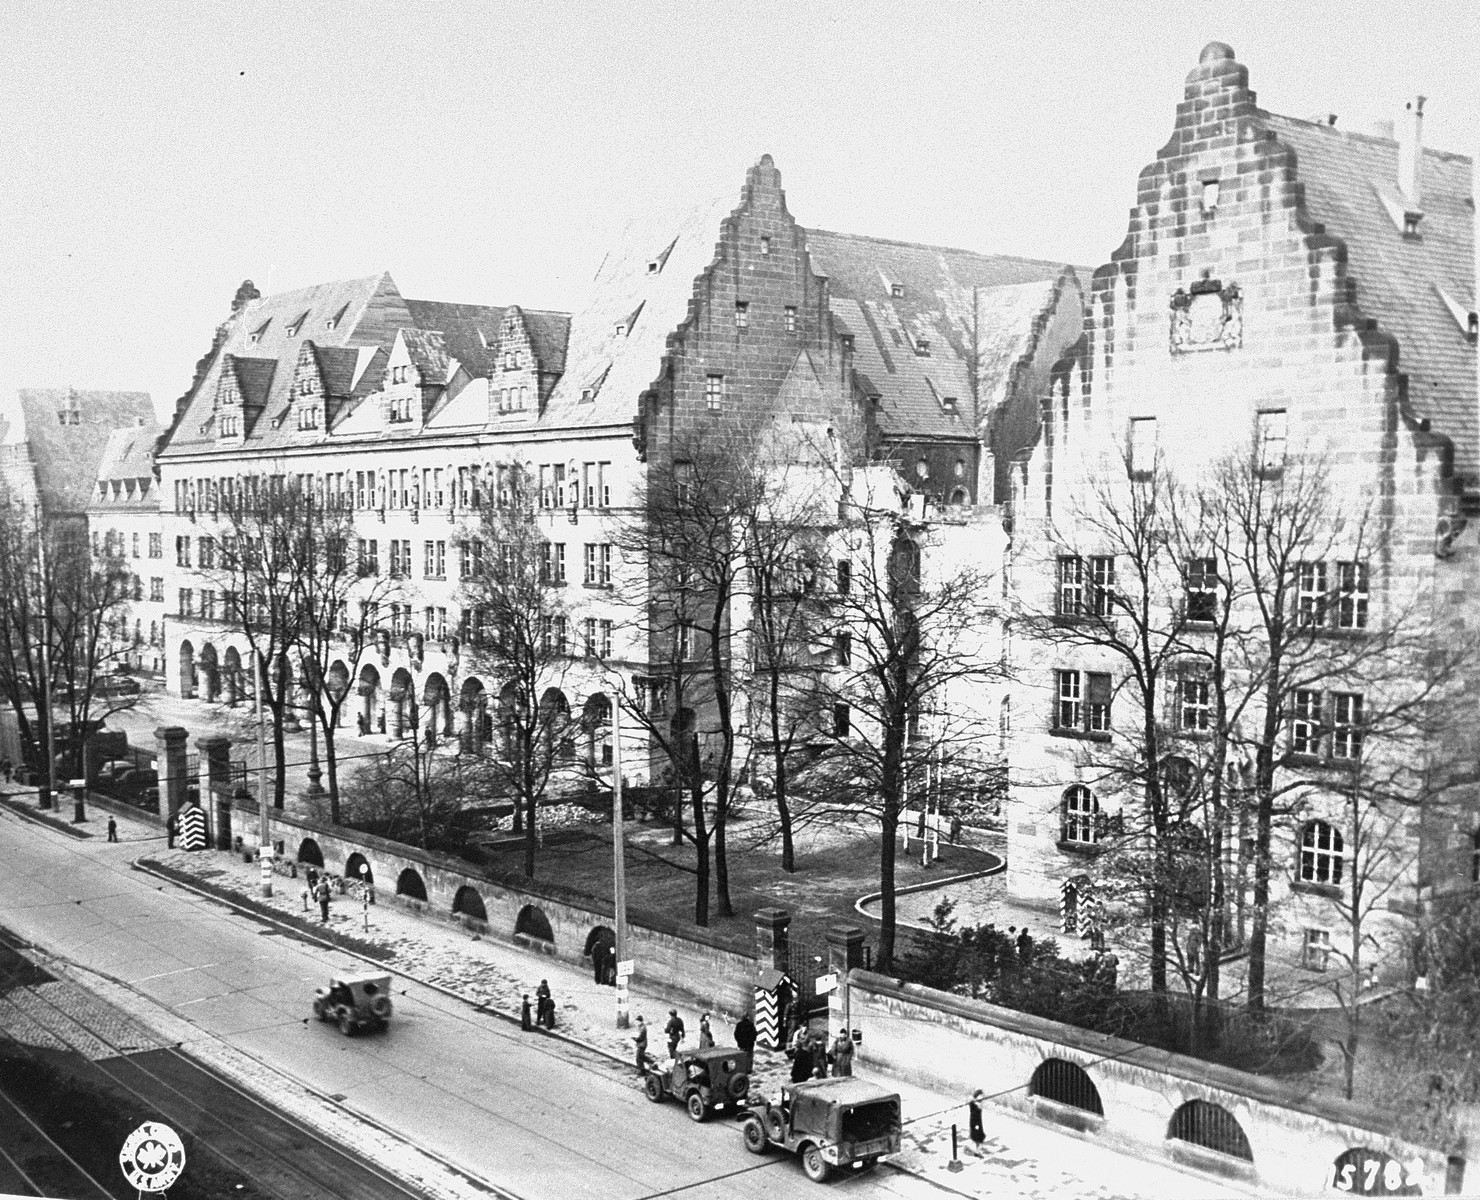 The Palace of Justice in Nuremberg, where the International Military Tribunal trial of war criminals was held.